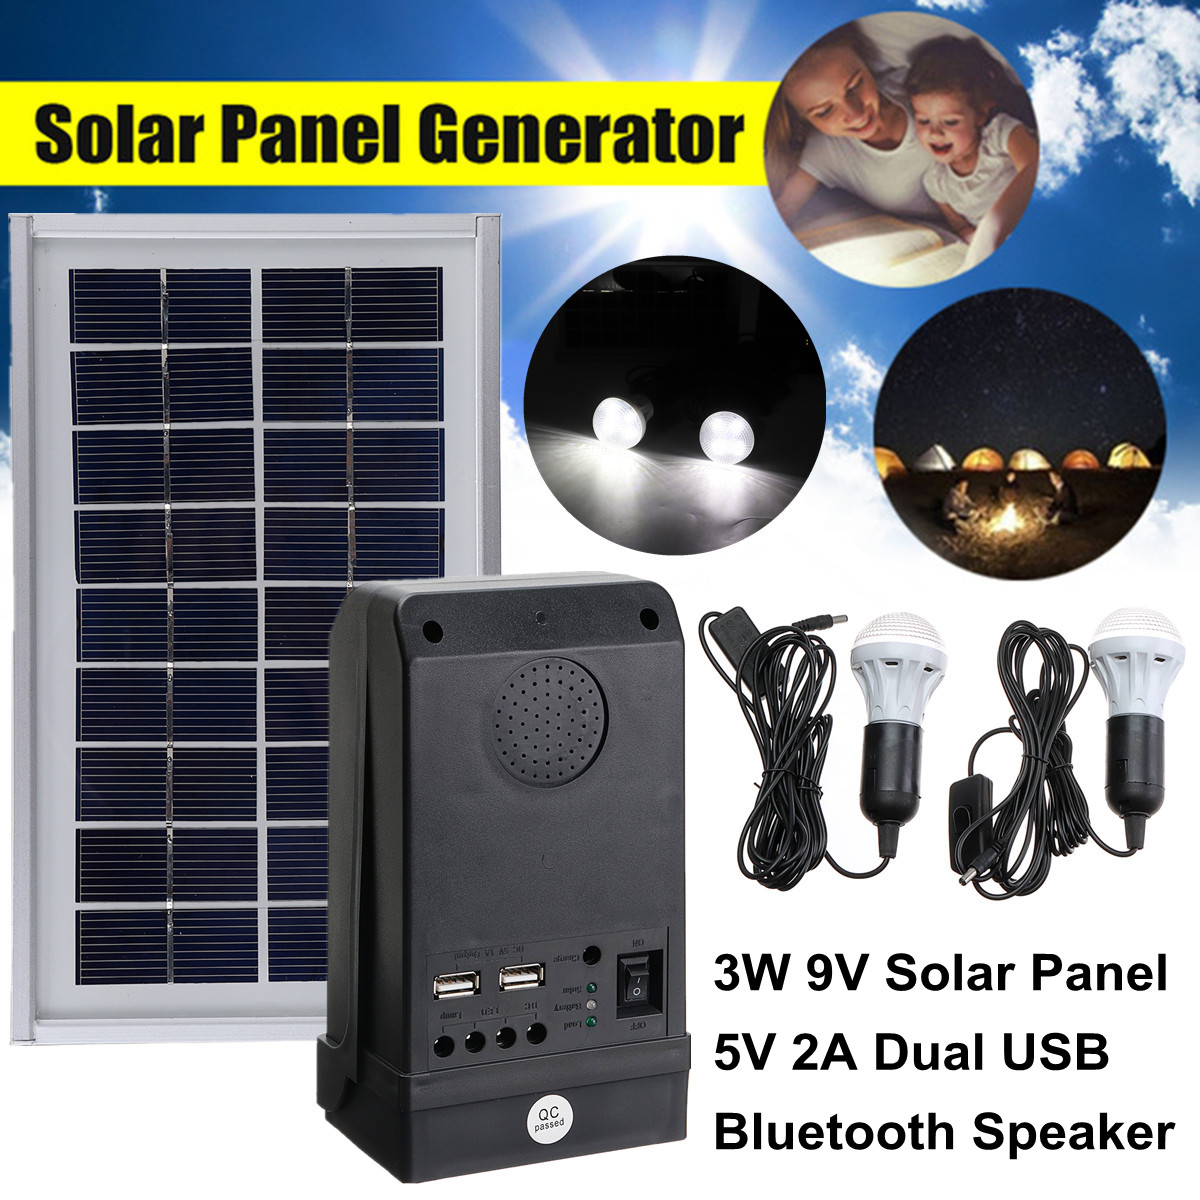 5V 2A USB Charger System Solar Panel Power Generator LED Light with Bluetooth Speaker Reusable Durable Camping Large Capacity diy 5v 2a voltage regulator junction box solar panel charger special kit